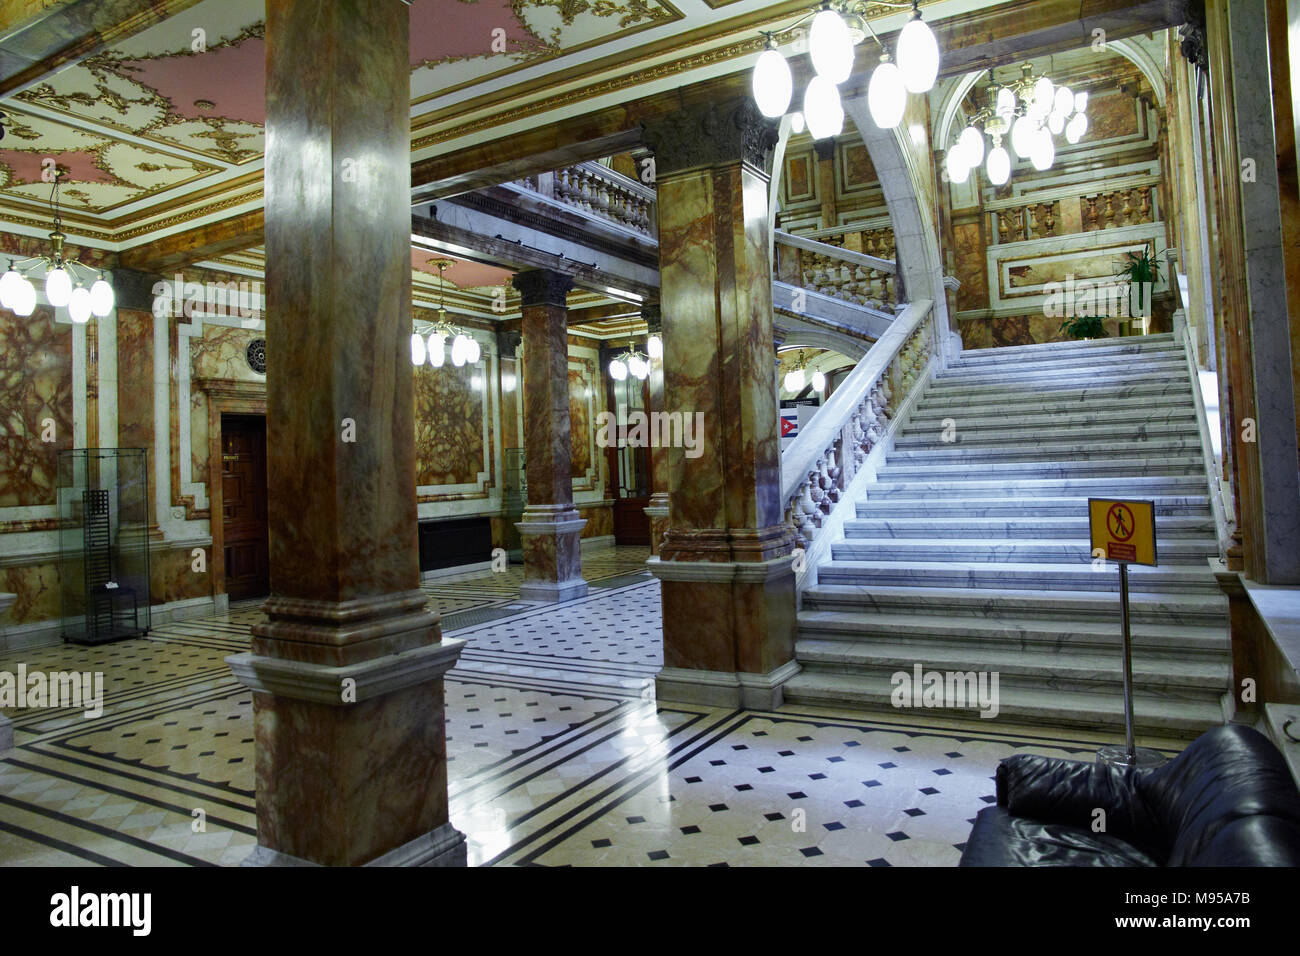 Old staircase victorian stock photos old staircase - Apple store victoria gardens appointment ...